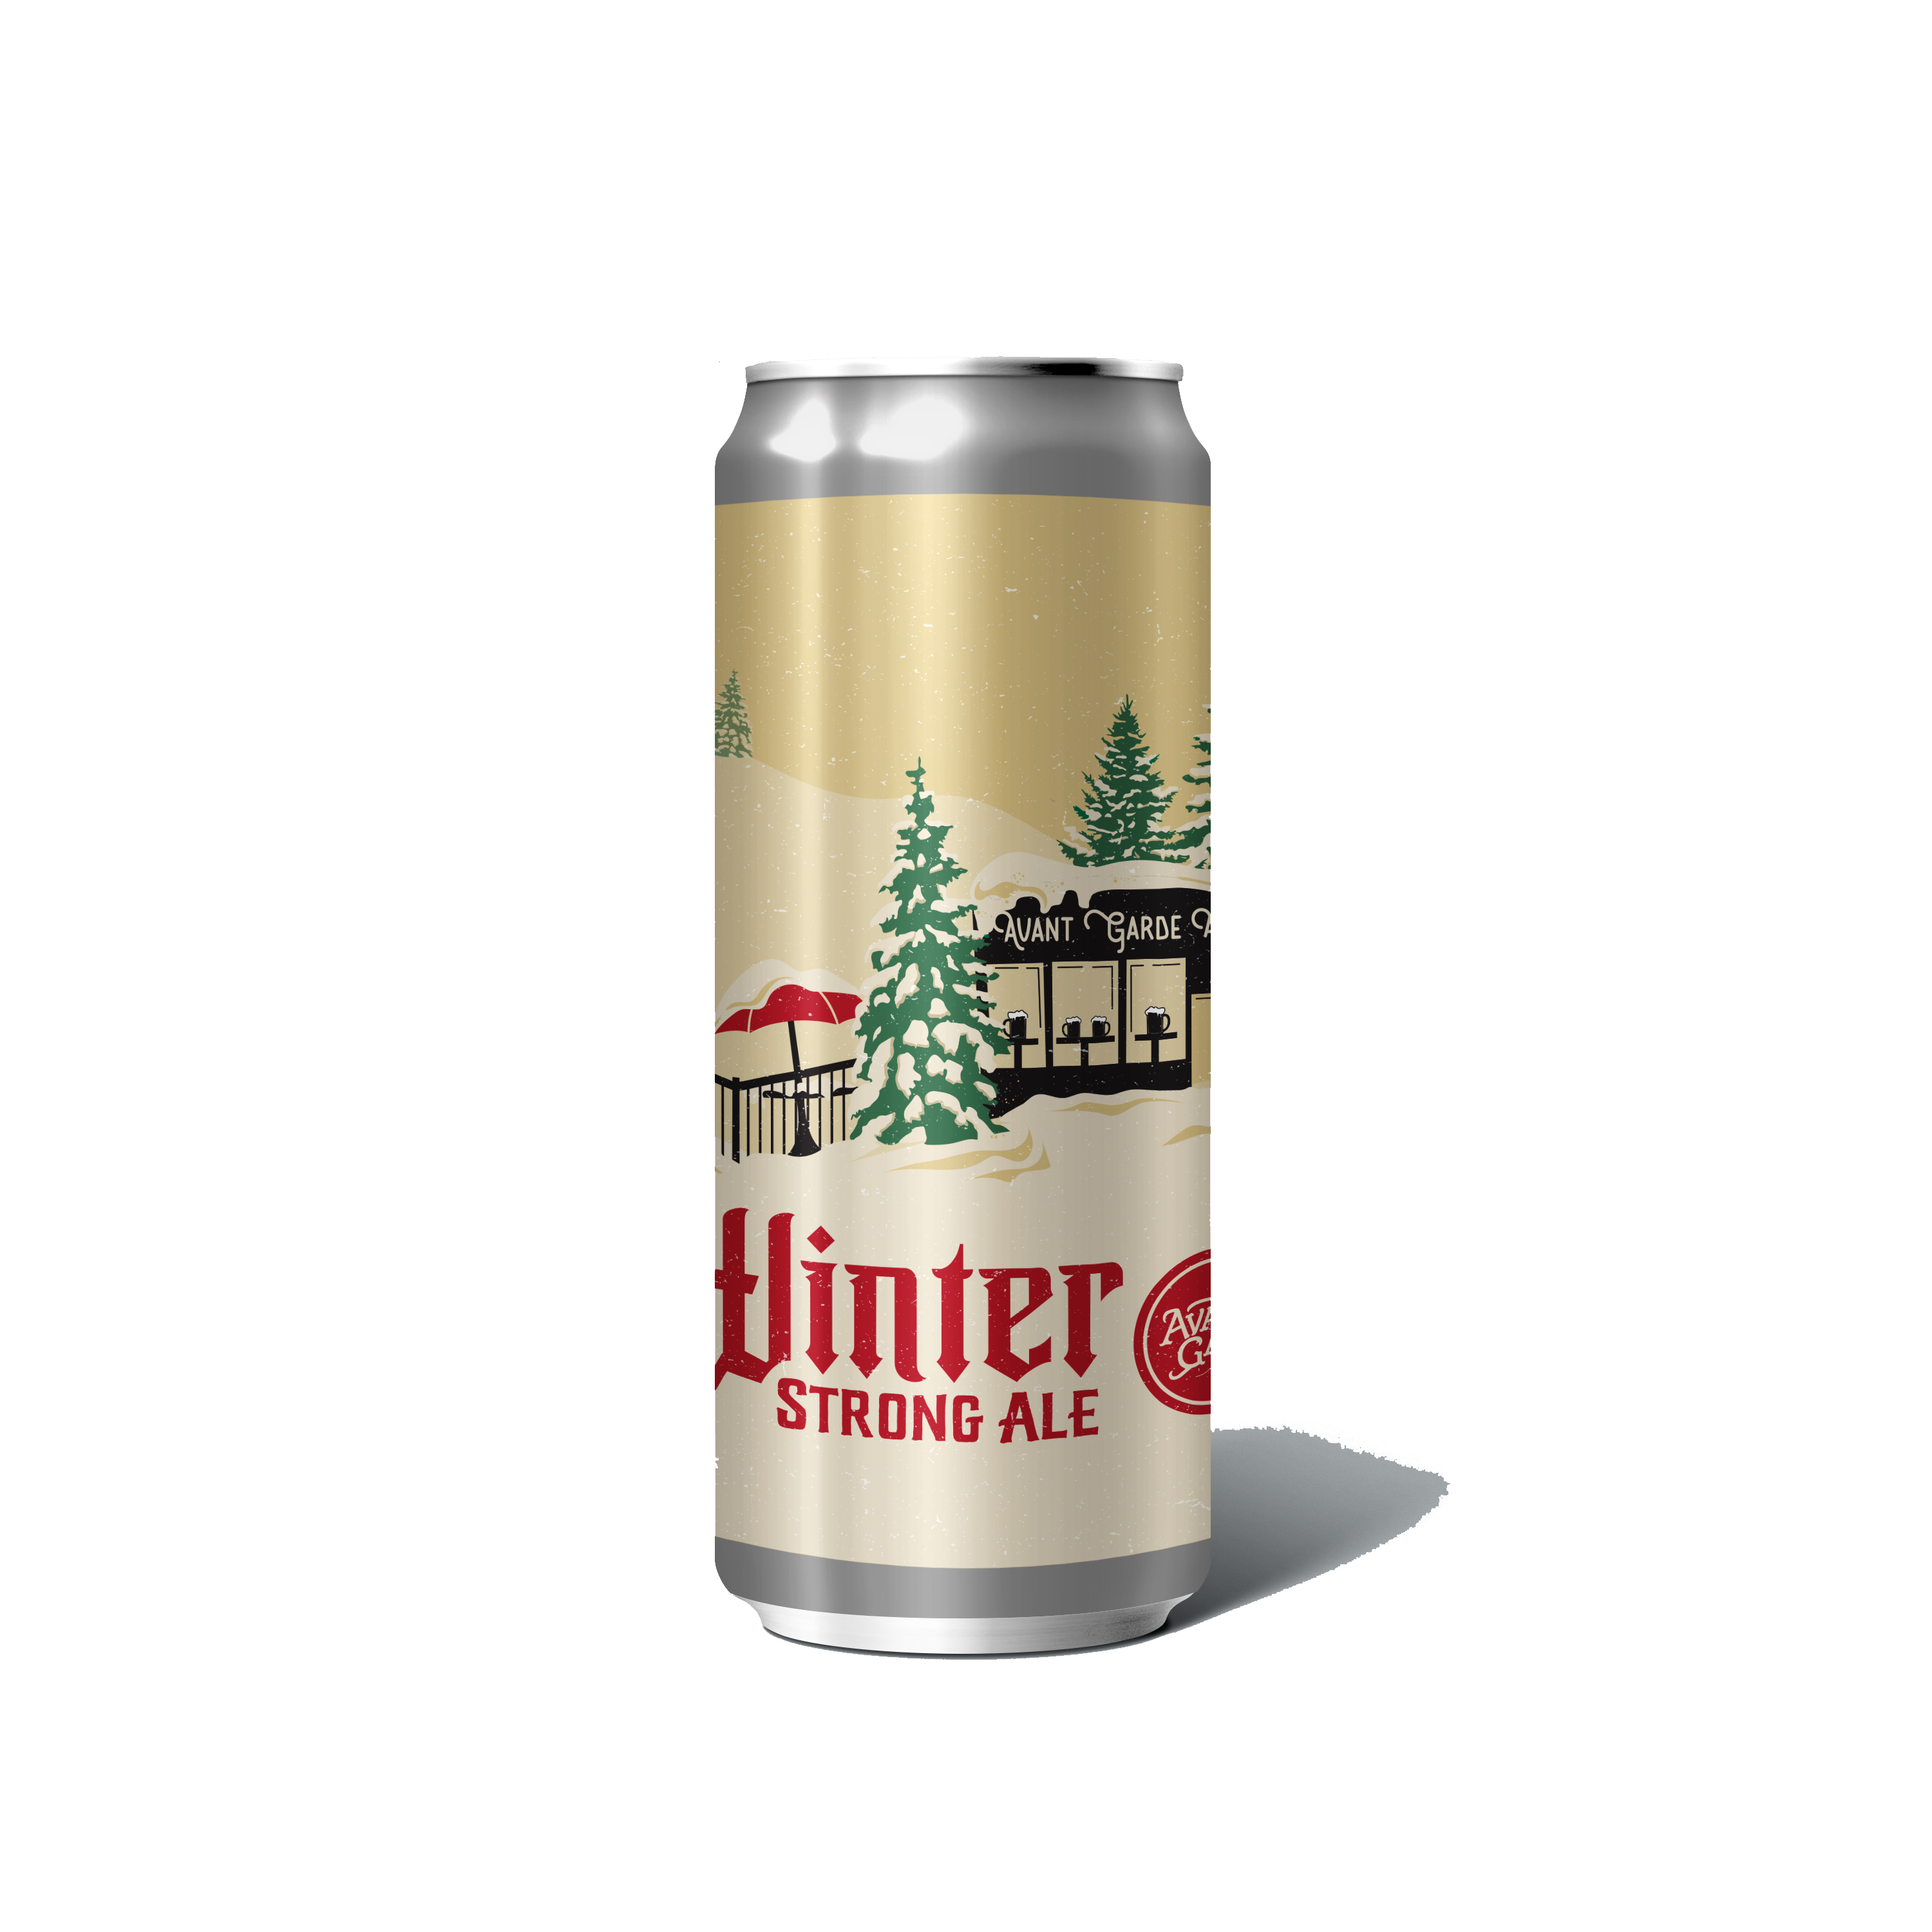 Winter Strong Ale